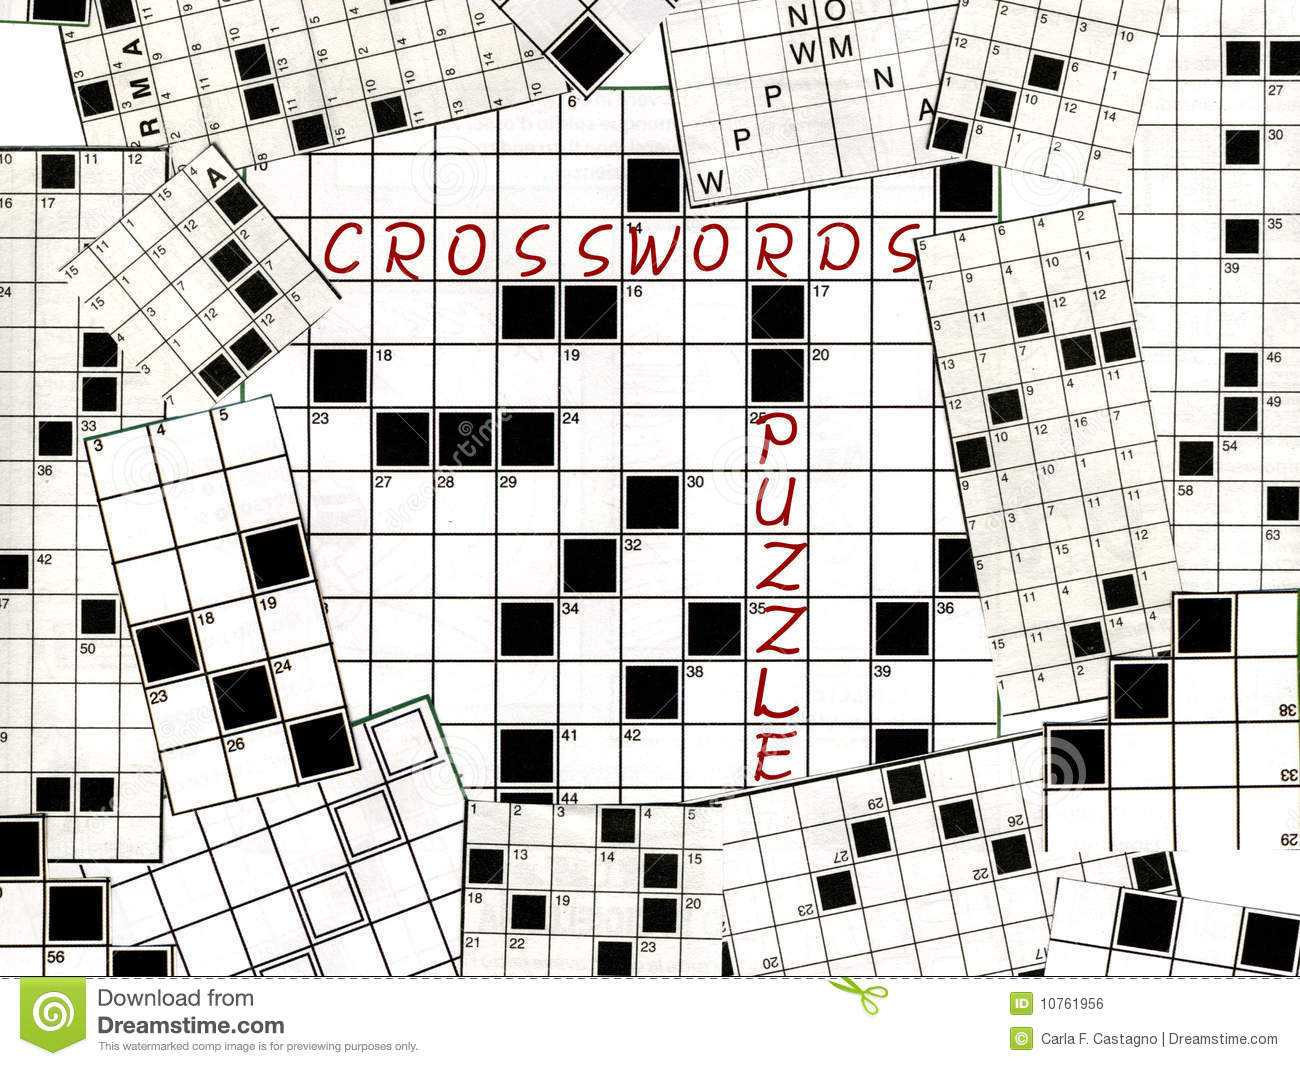 Crosswords Puzzle Collage Royalty Free Stock Image - Image: 10761956